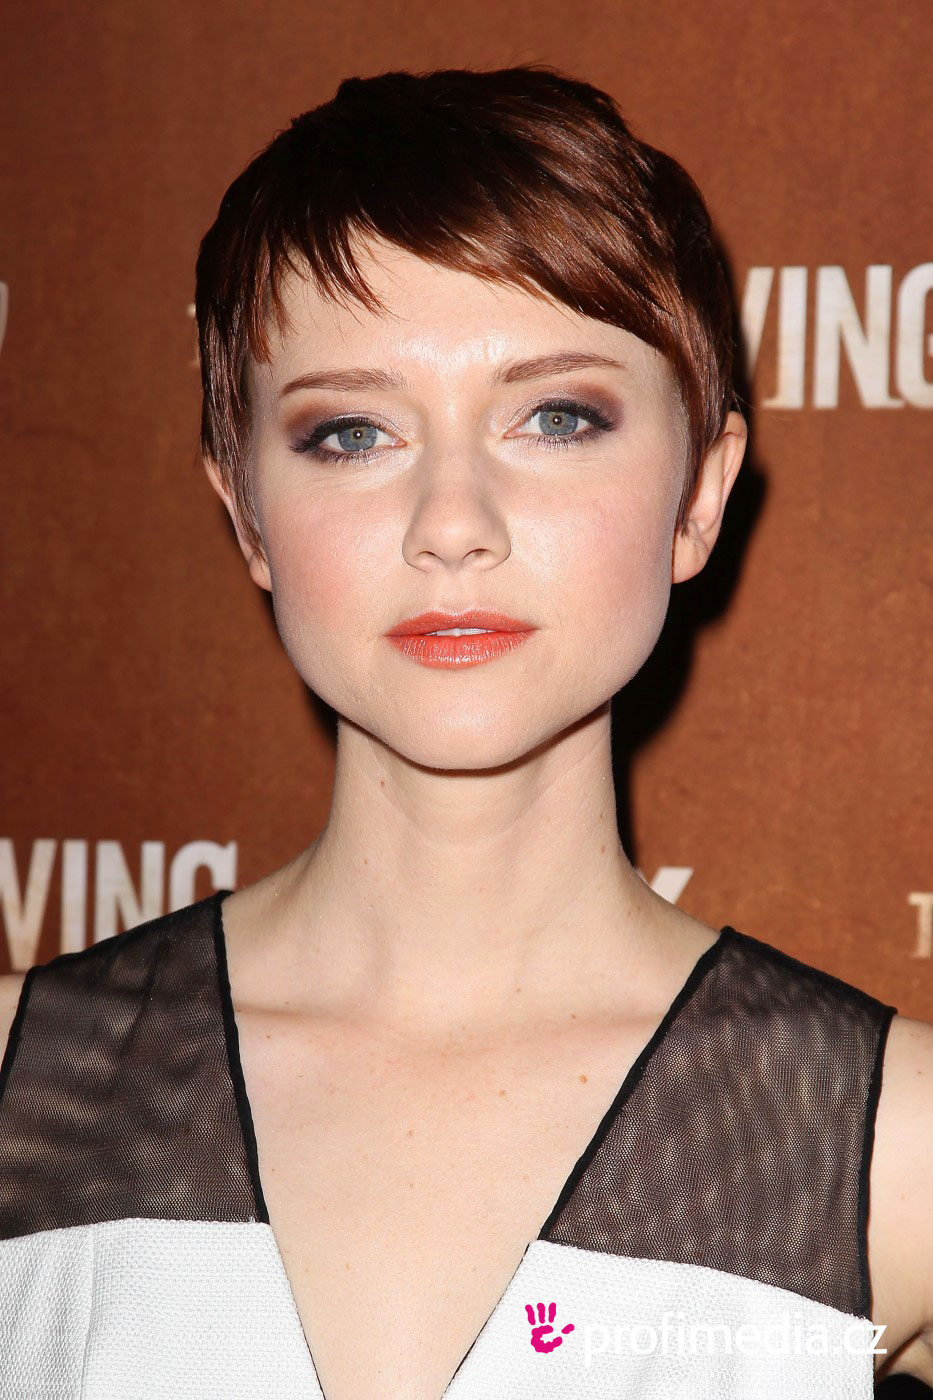 Valorie Curry - - hairstyle - easyHairStyler